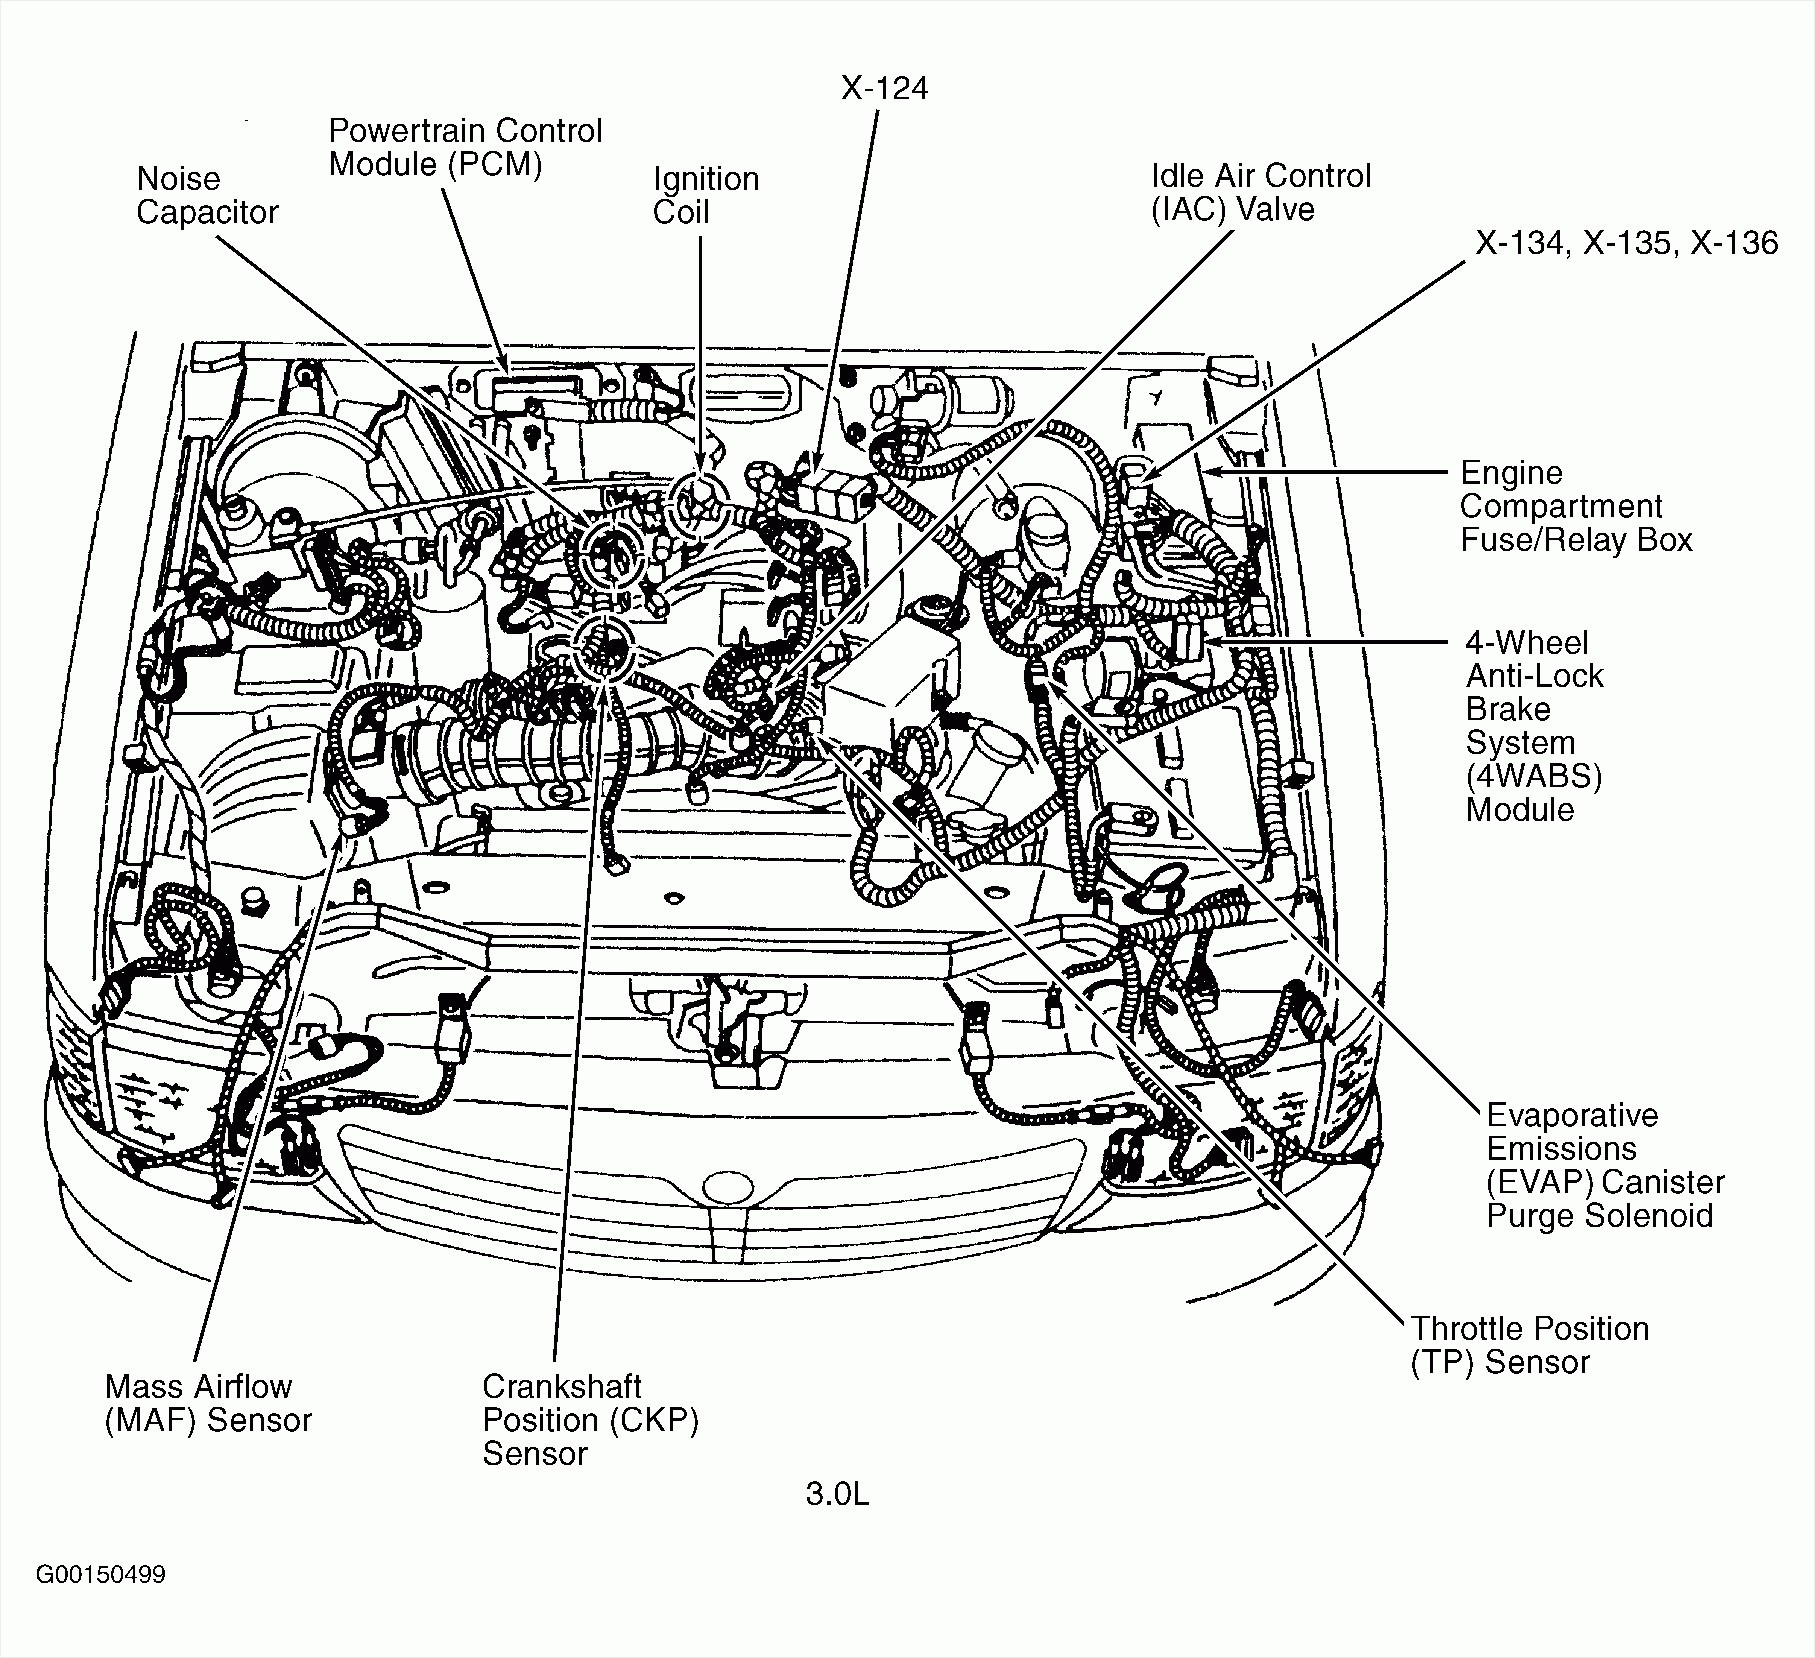 2001 Mazda Protege Engine Diagram - All Wiring Diagram